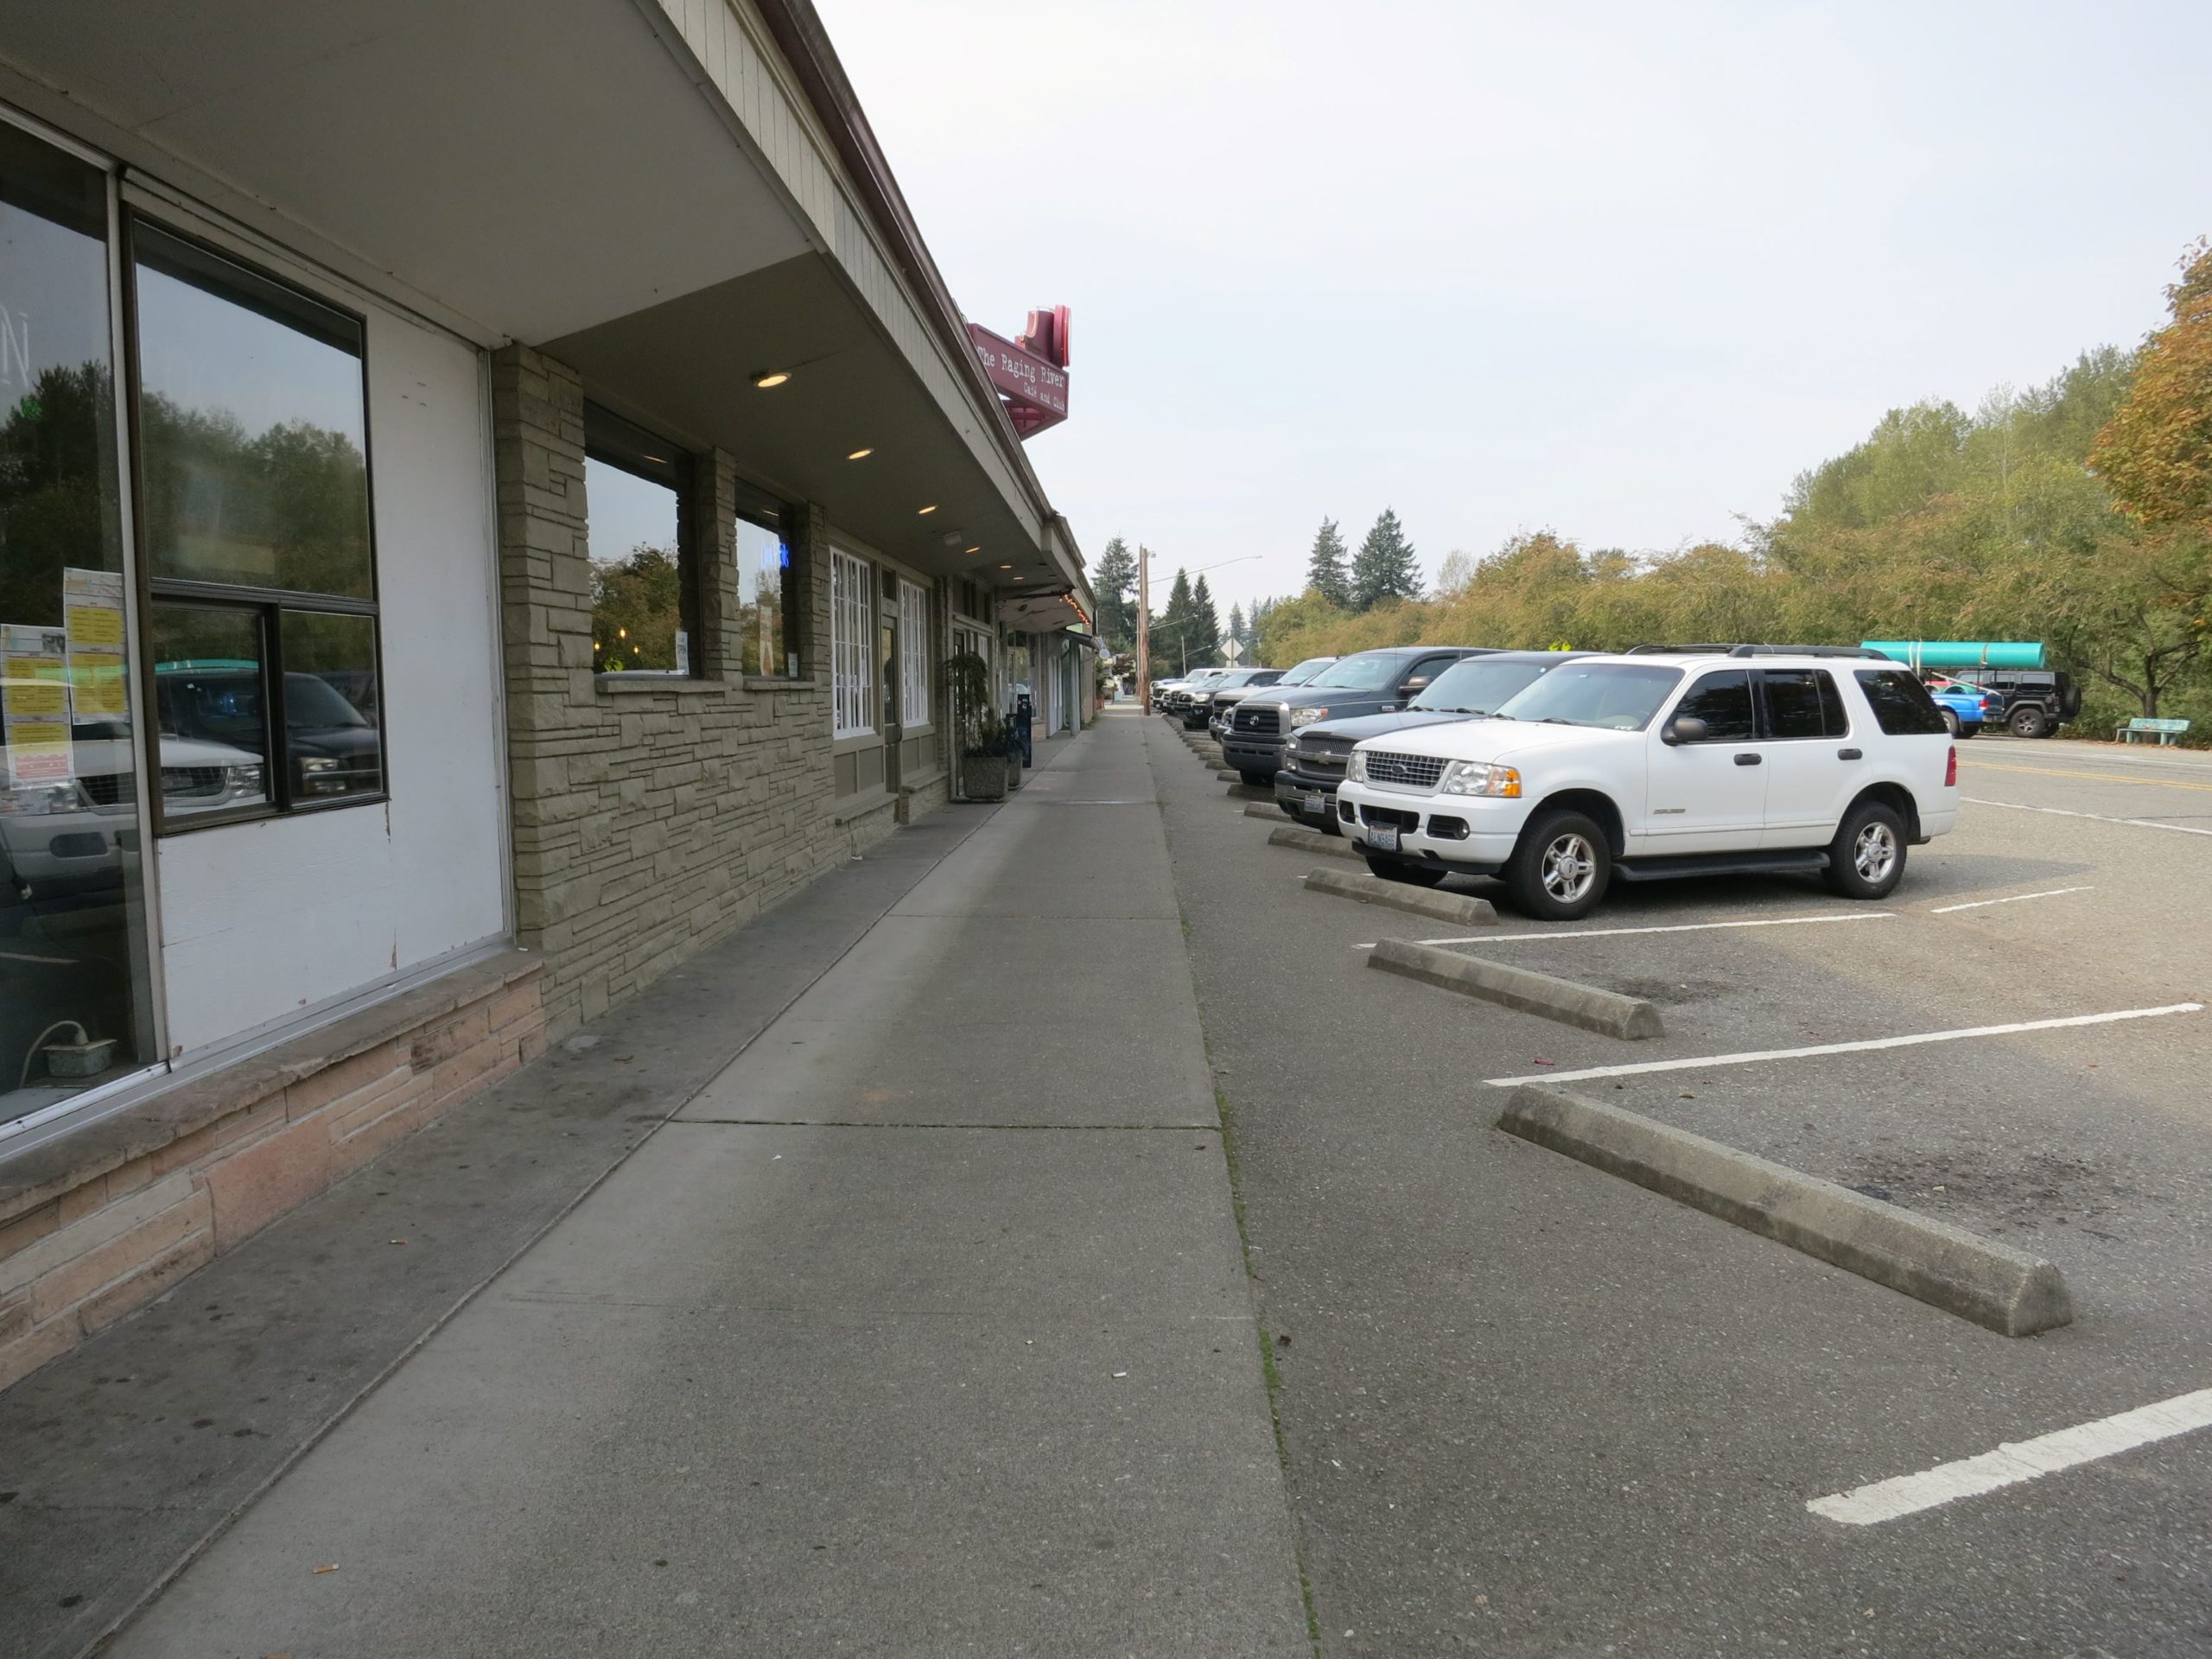 Image of the sidewalk along the south side of SR 202 in central Fall City.